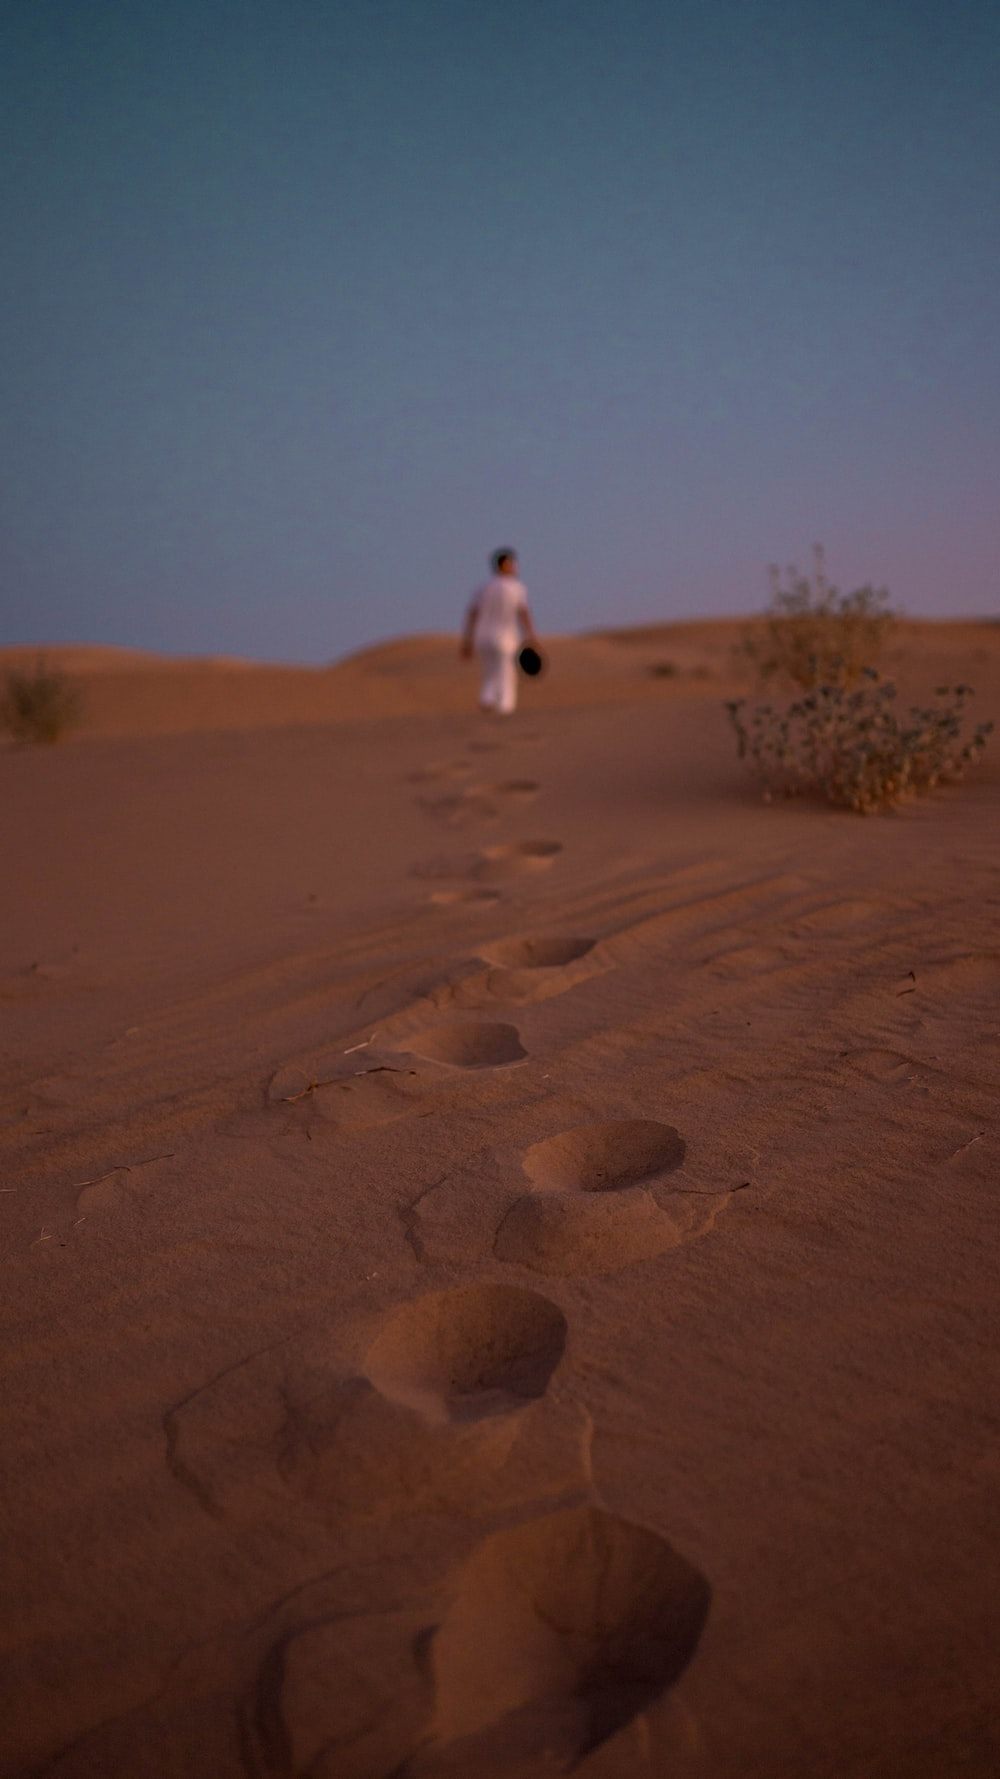 person in white shirt walking on brown sand during daytime